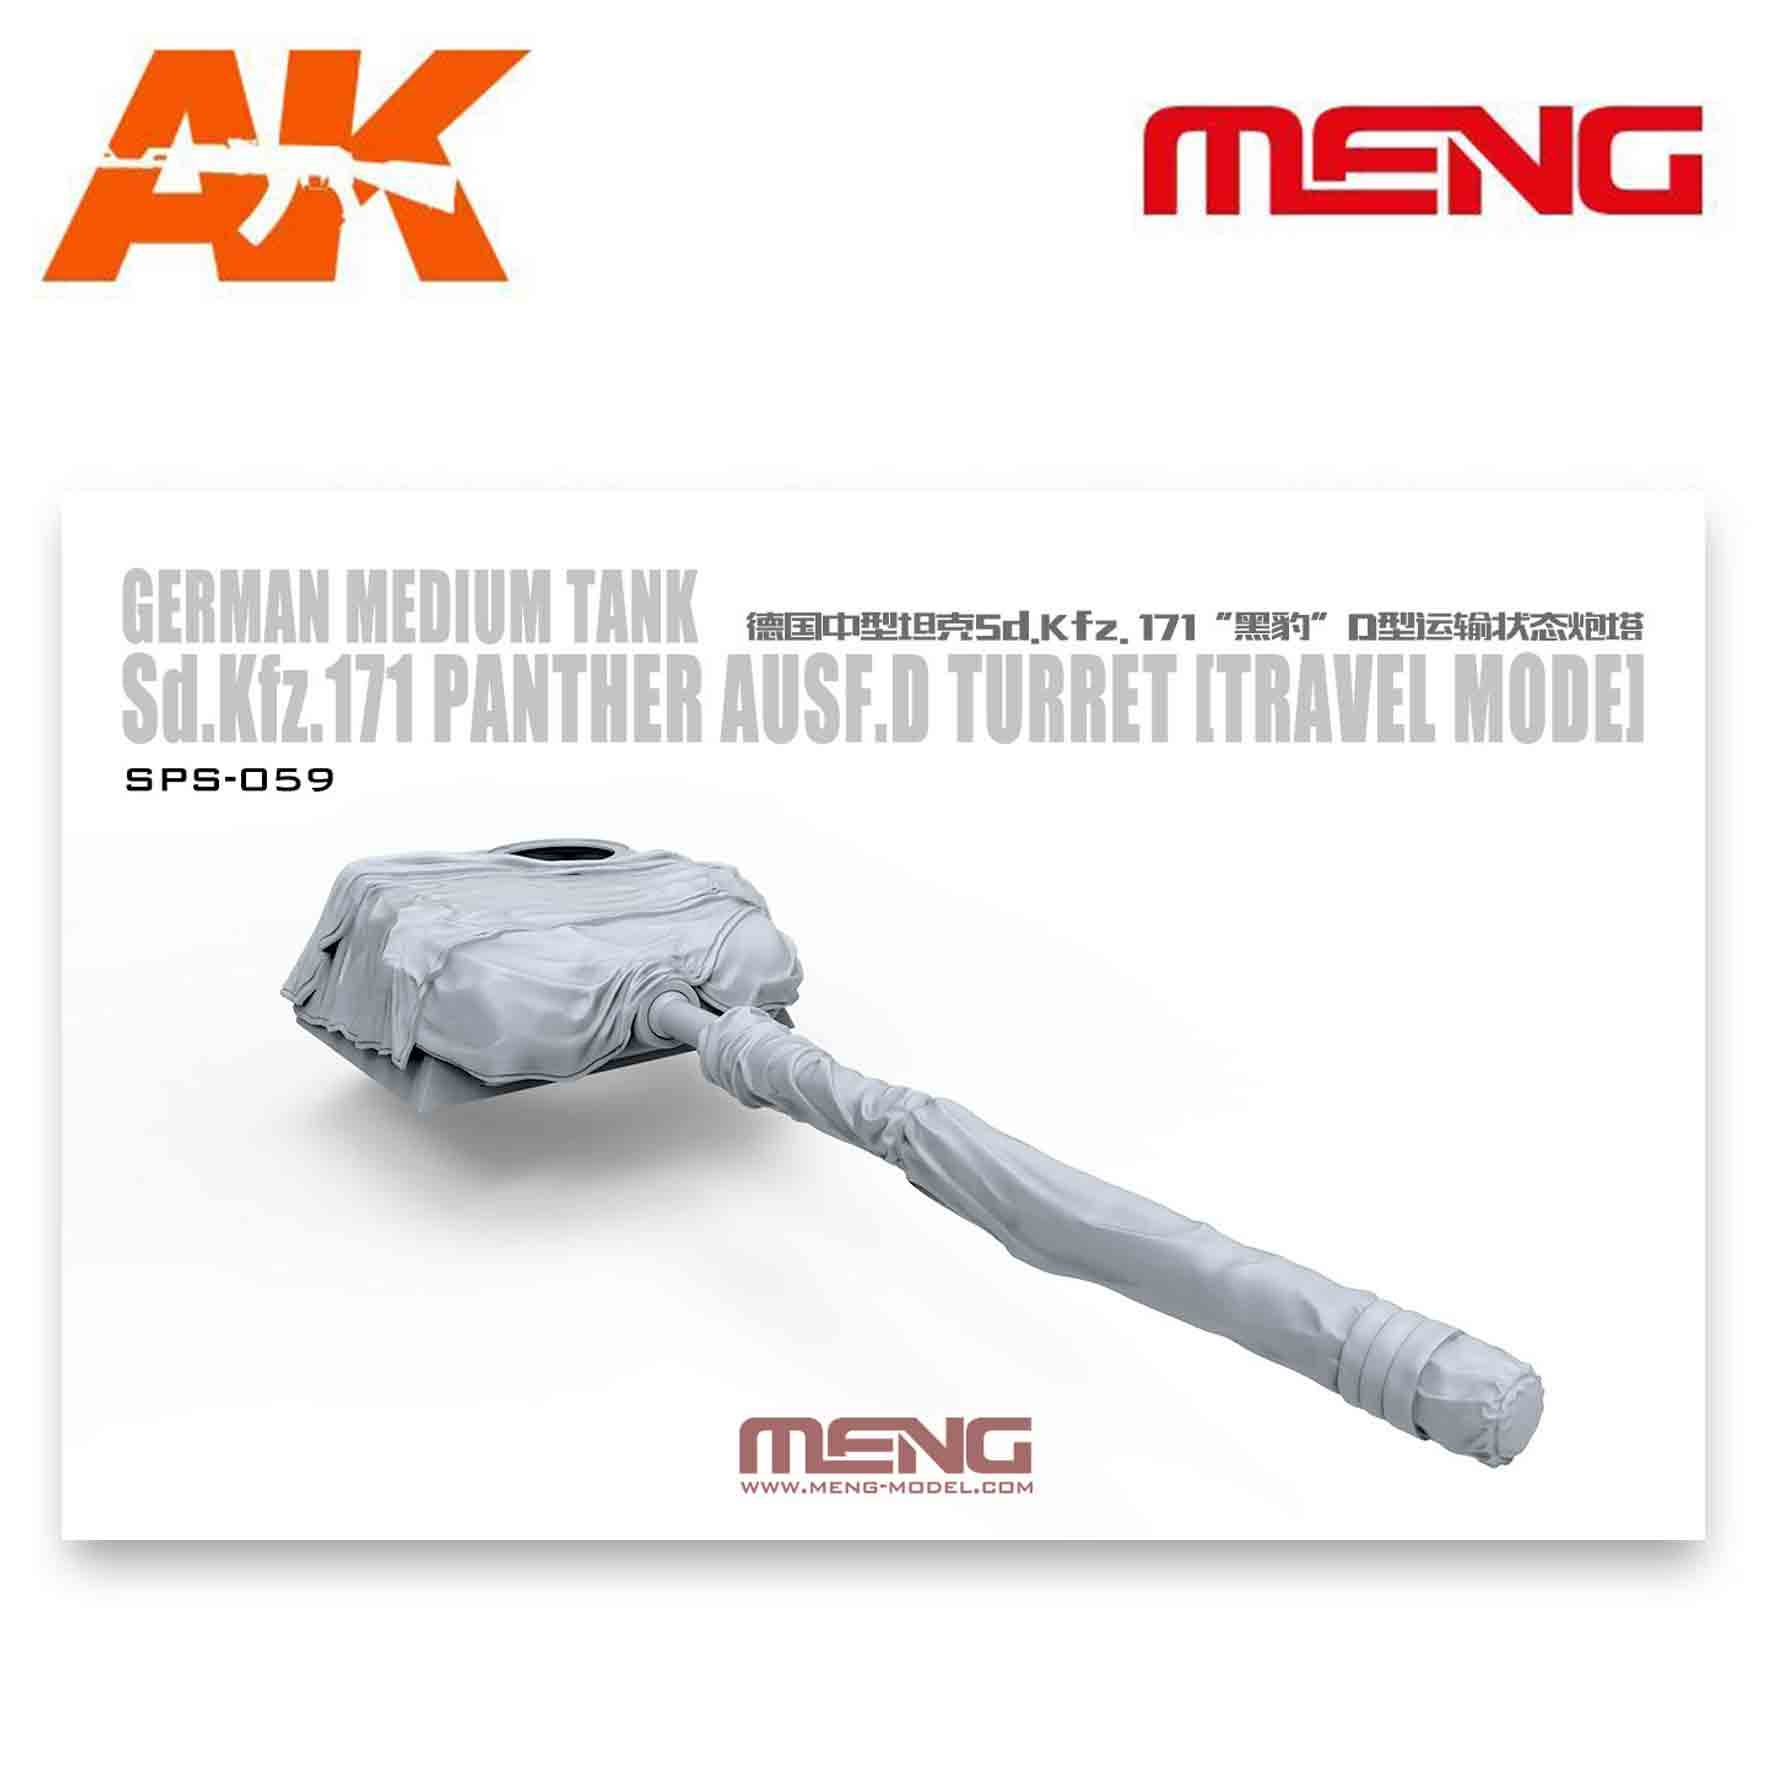 Meng Models German Medium Tank Sd.Kfz.171 Panther Ausf.D Turret (Travel Mode) (Resin) - Scale 1/35 - Meng Models - MM SPS-059